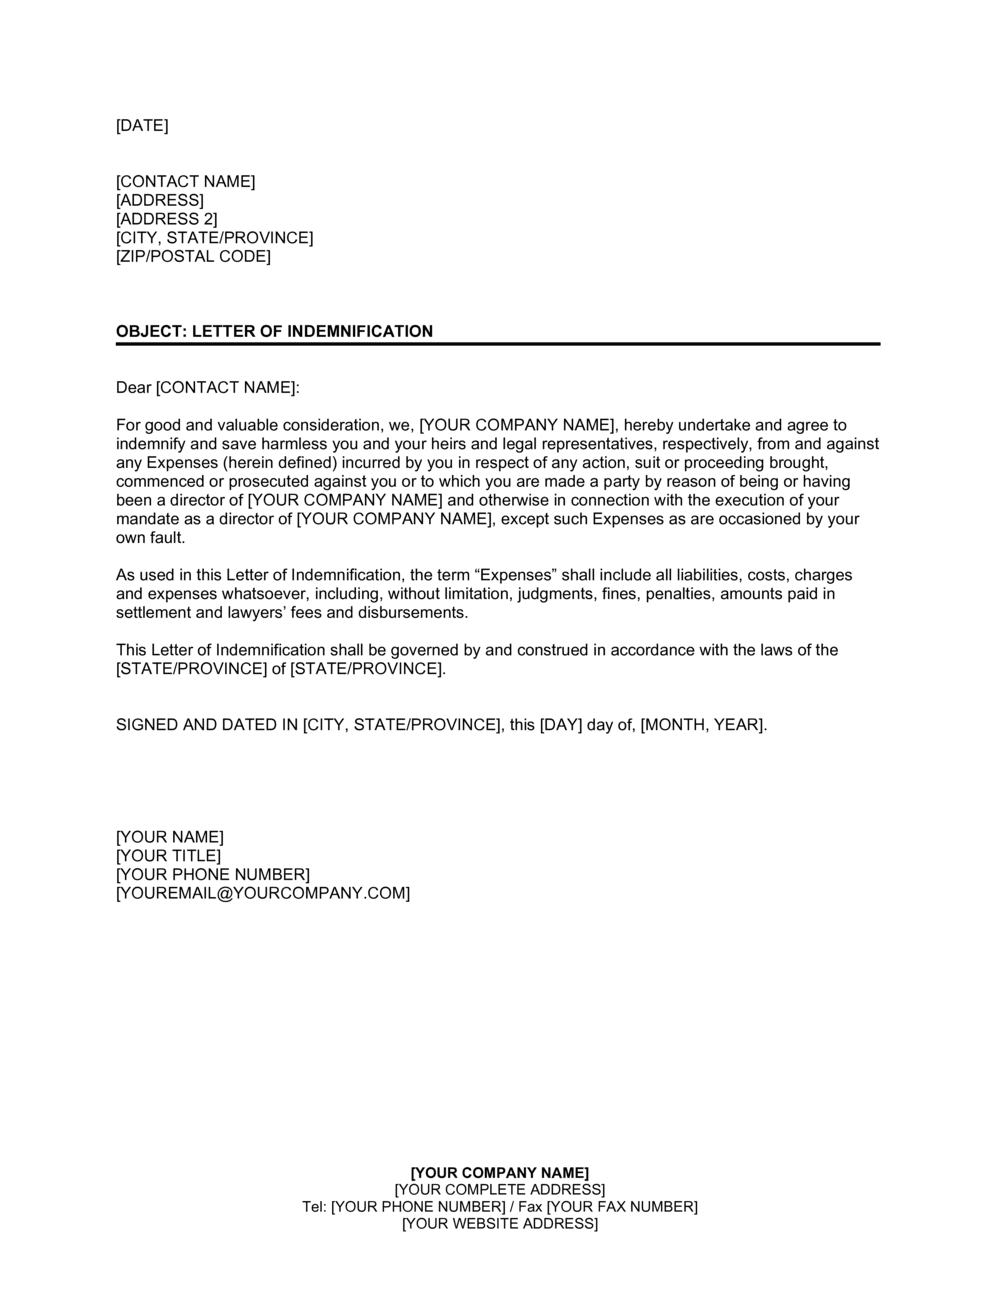 Letter of Indemnification to Former Director Template   by ...